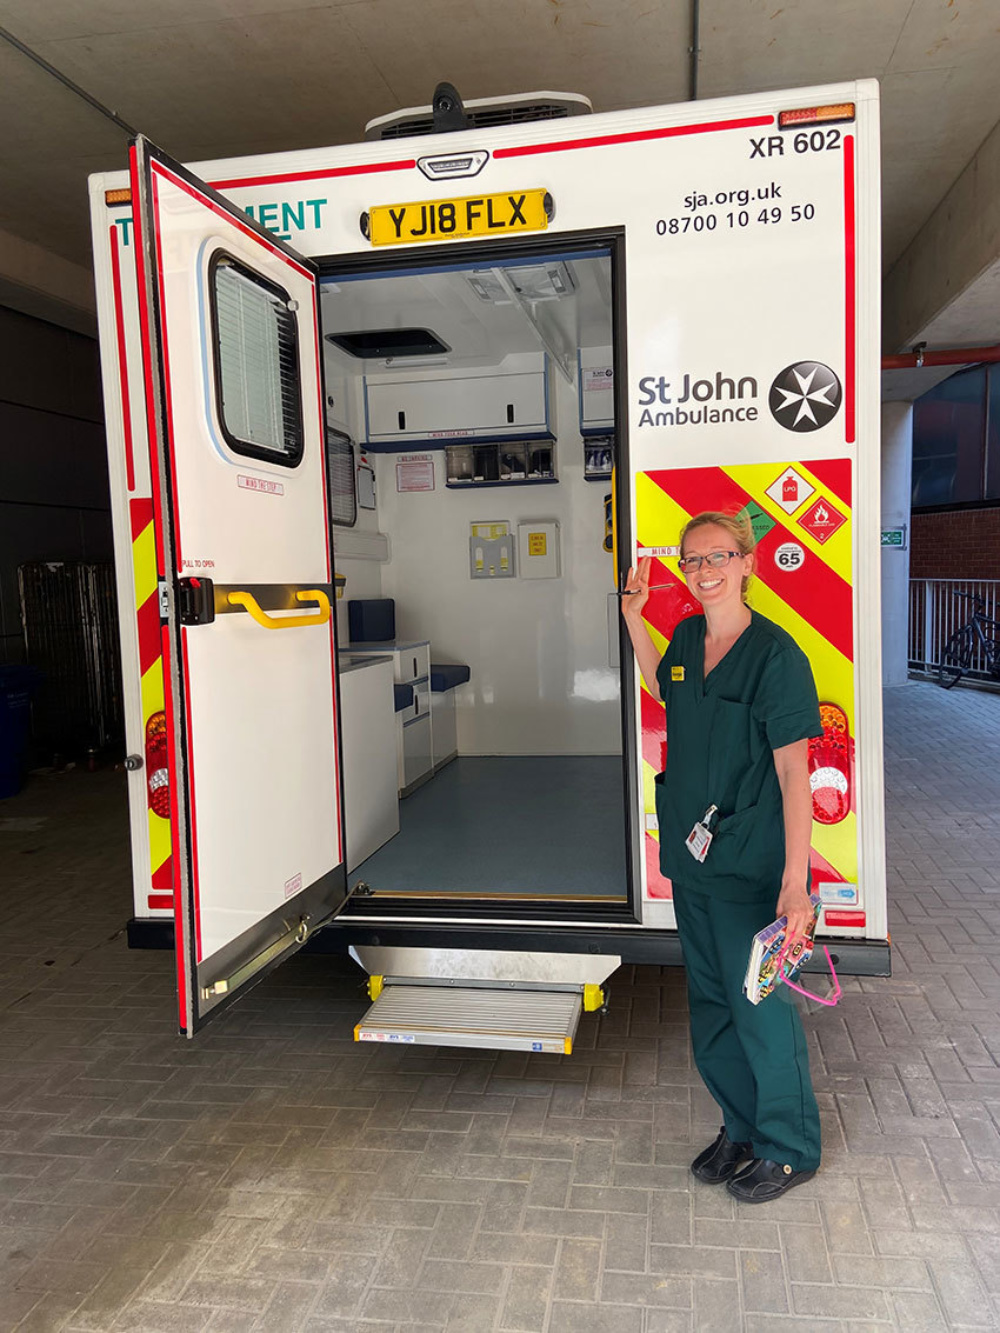 Hospital paramedic standing at the back of an ambulance with one door open, showing the equipment inside